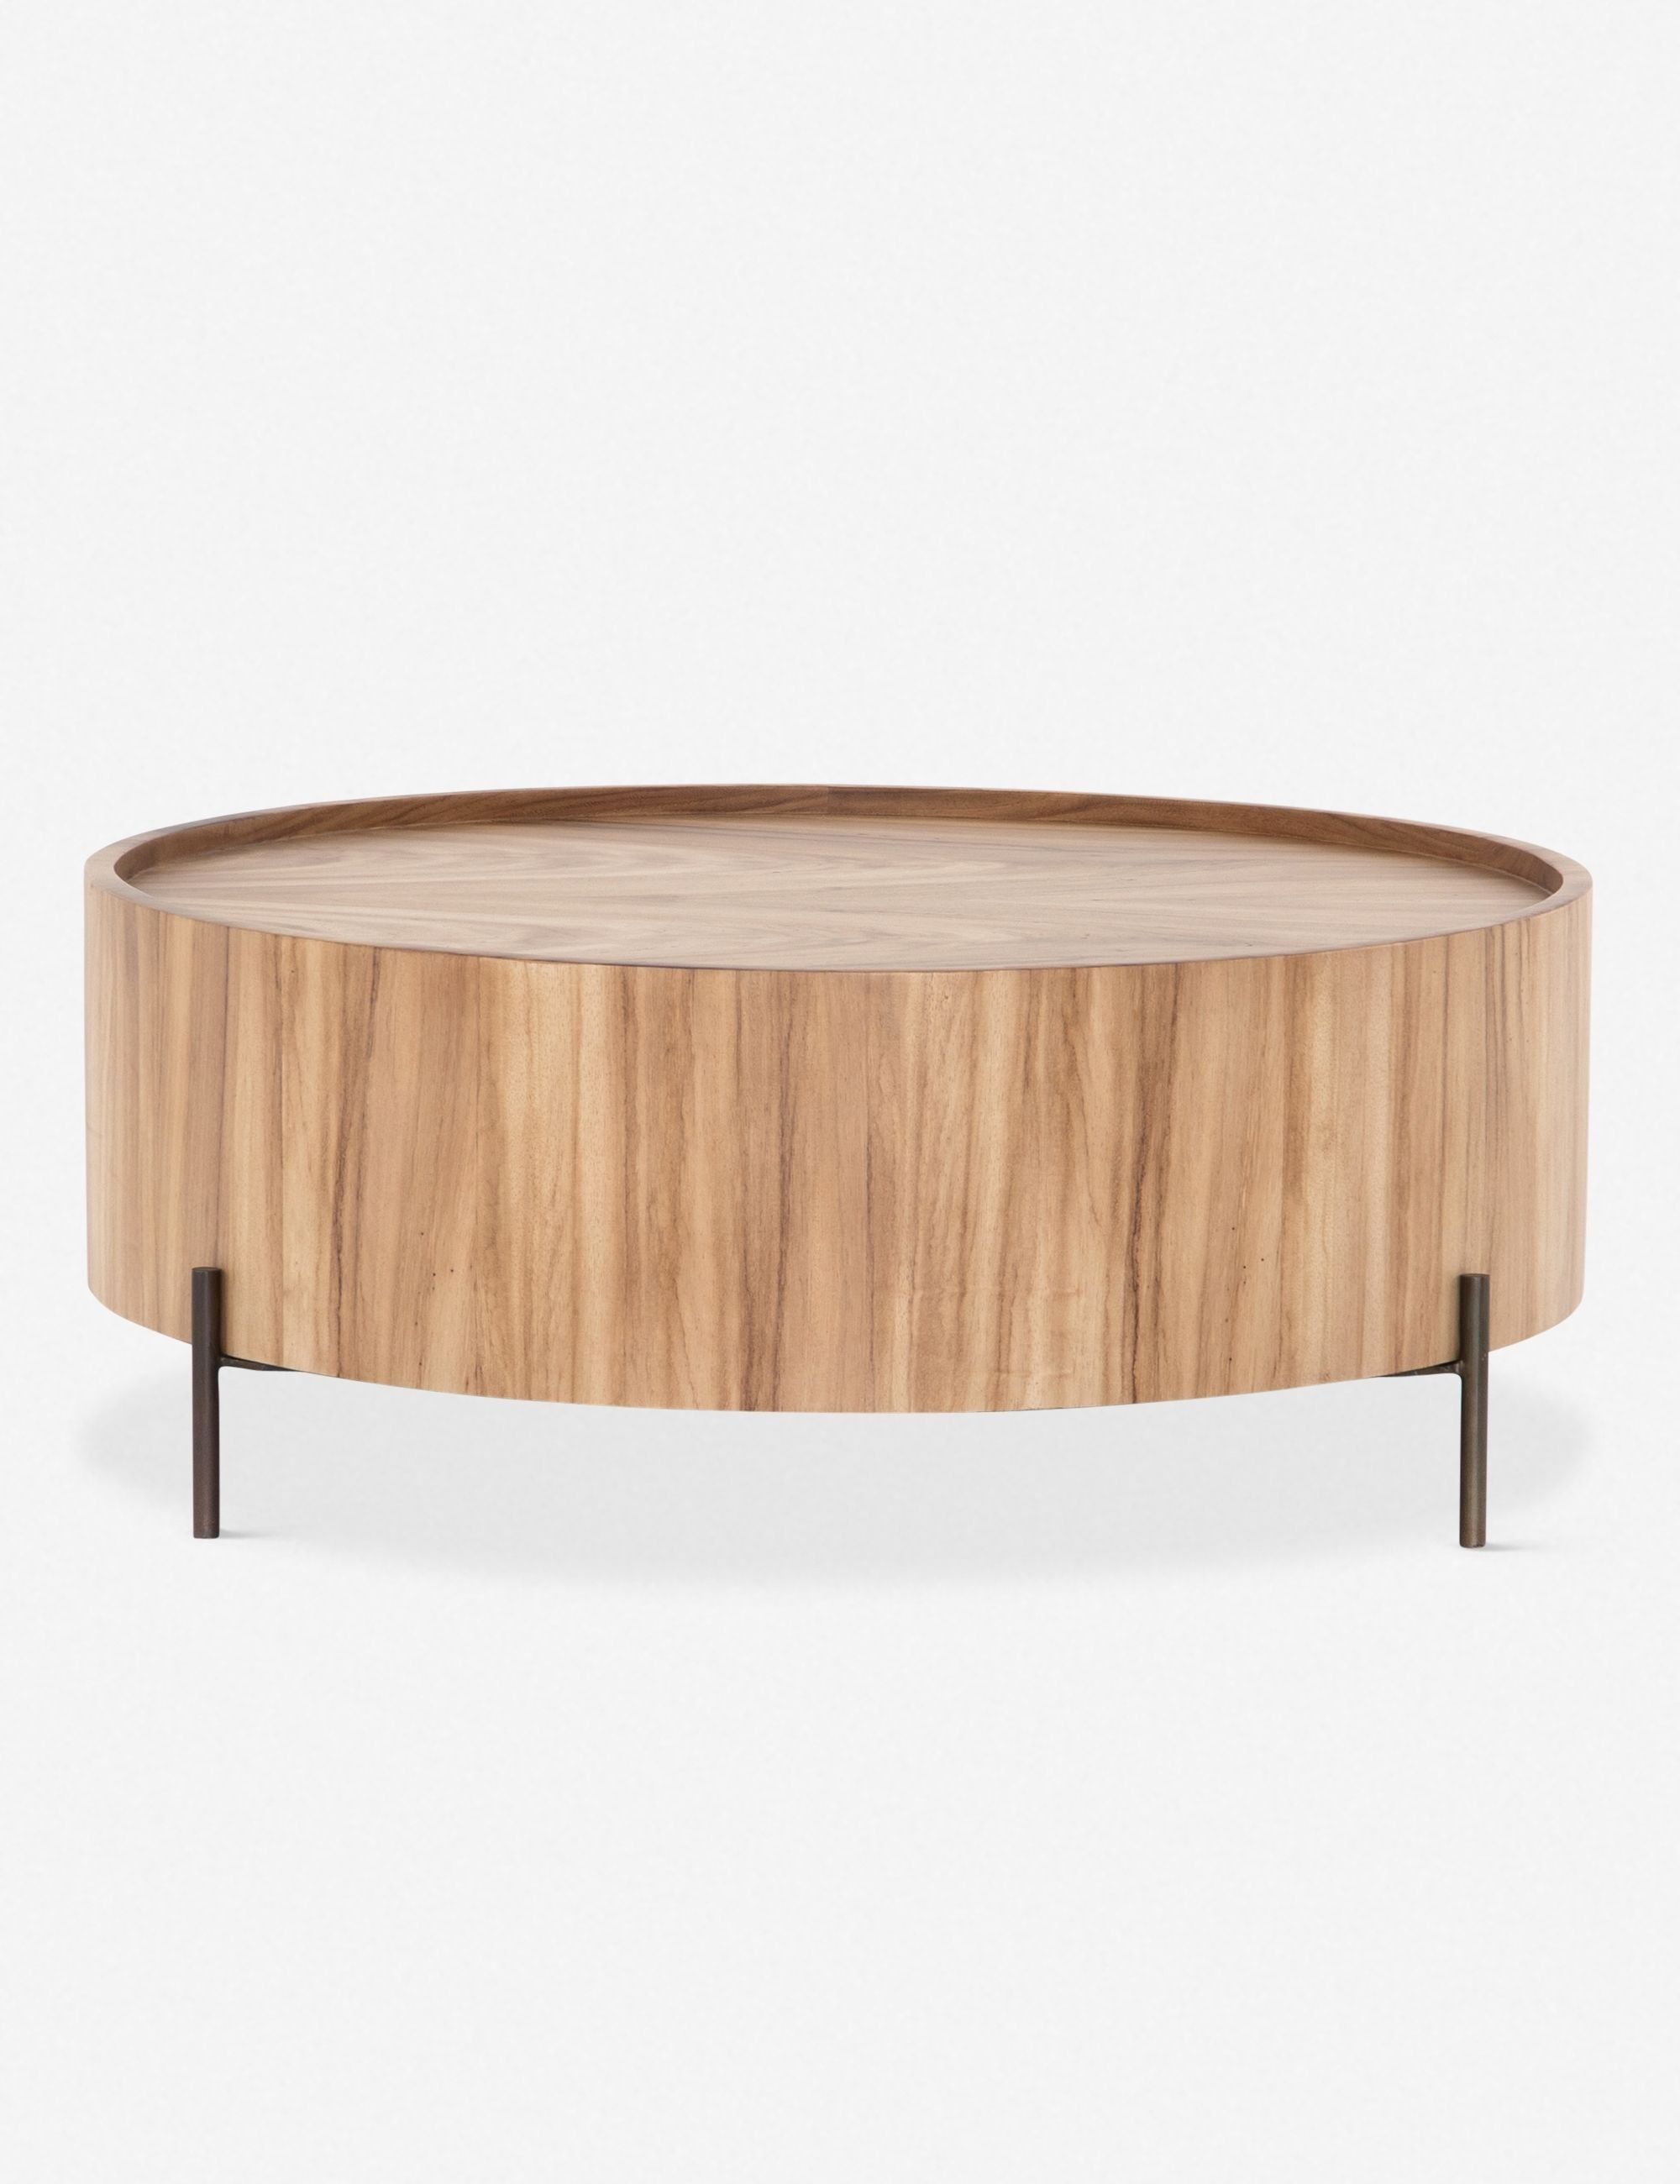 59 Low Round Wooden Coffee Table Idea